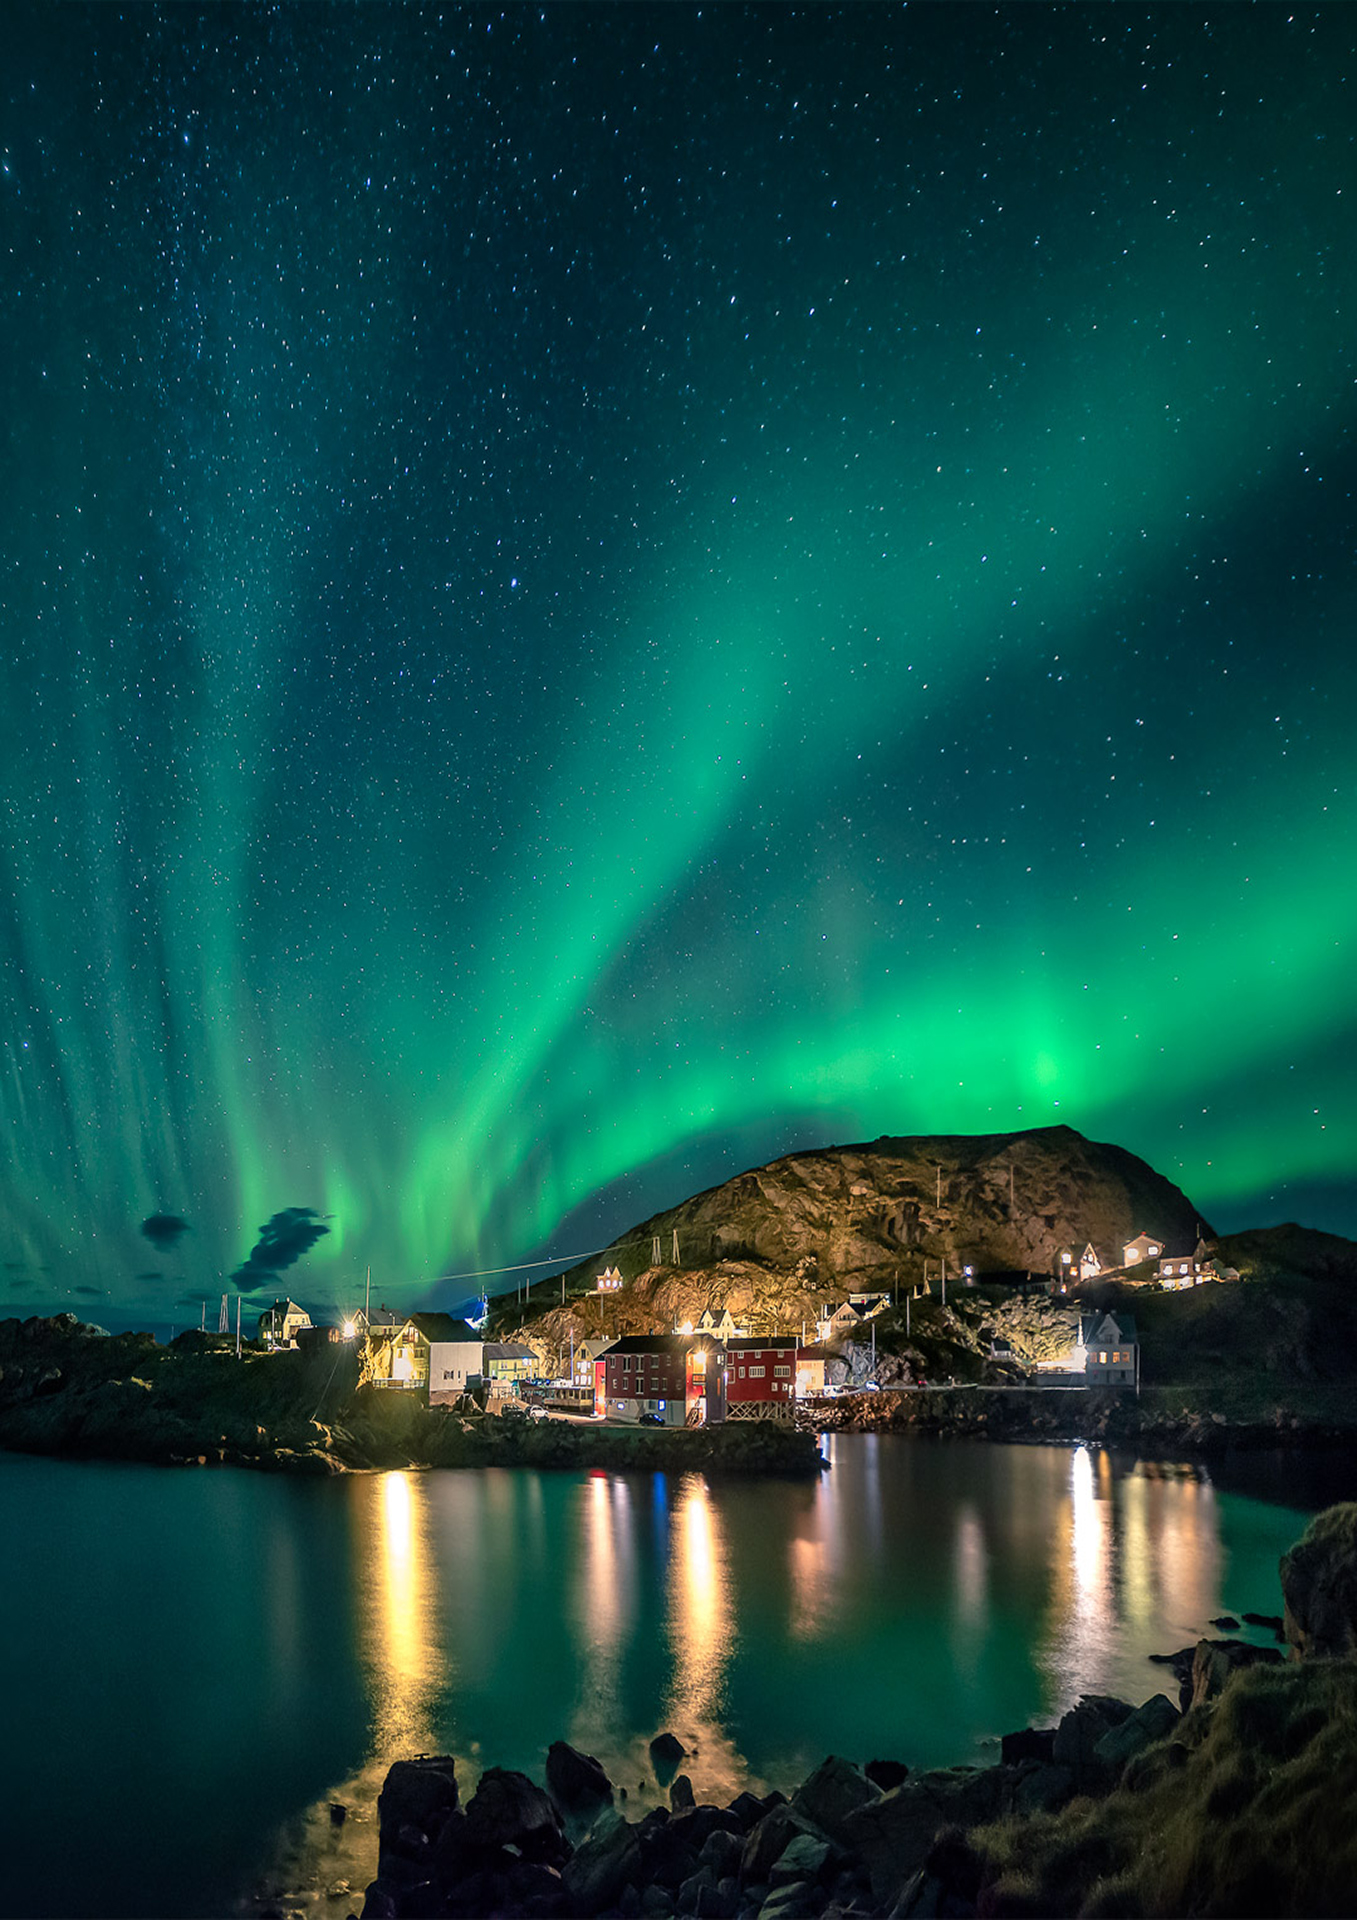 Nyksund   Is a small stunning little costal village in the Vesterålen Archipelago and has been an important center for cod fishing back in the 18th century. Today it is a popular place for artists and photographers but also for hikers.